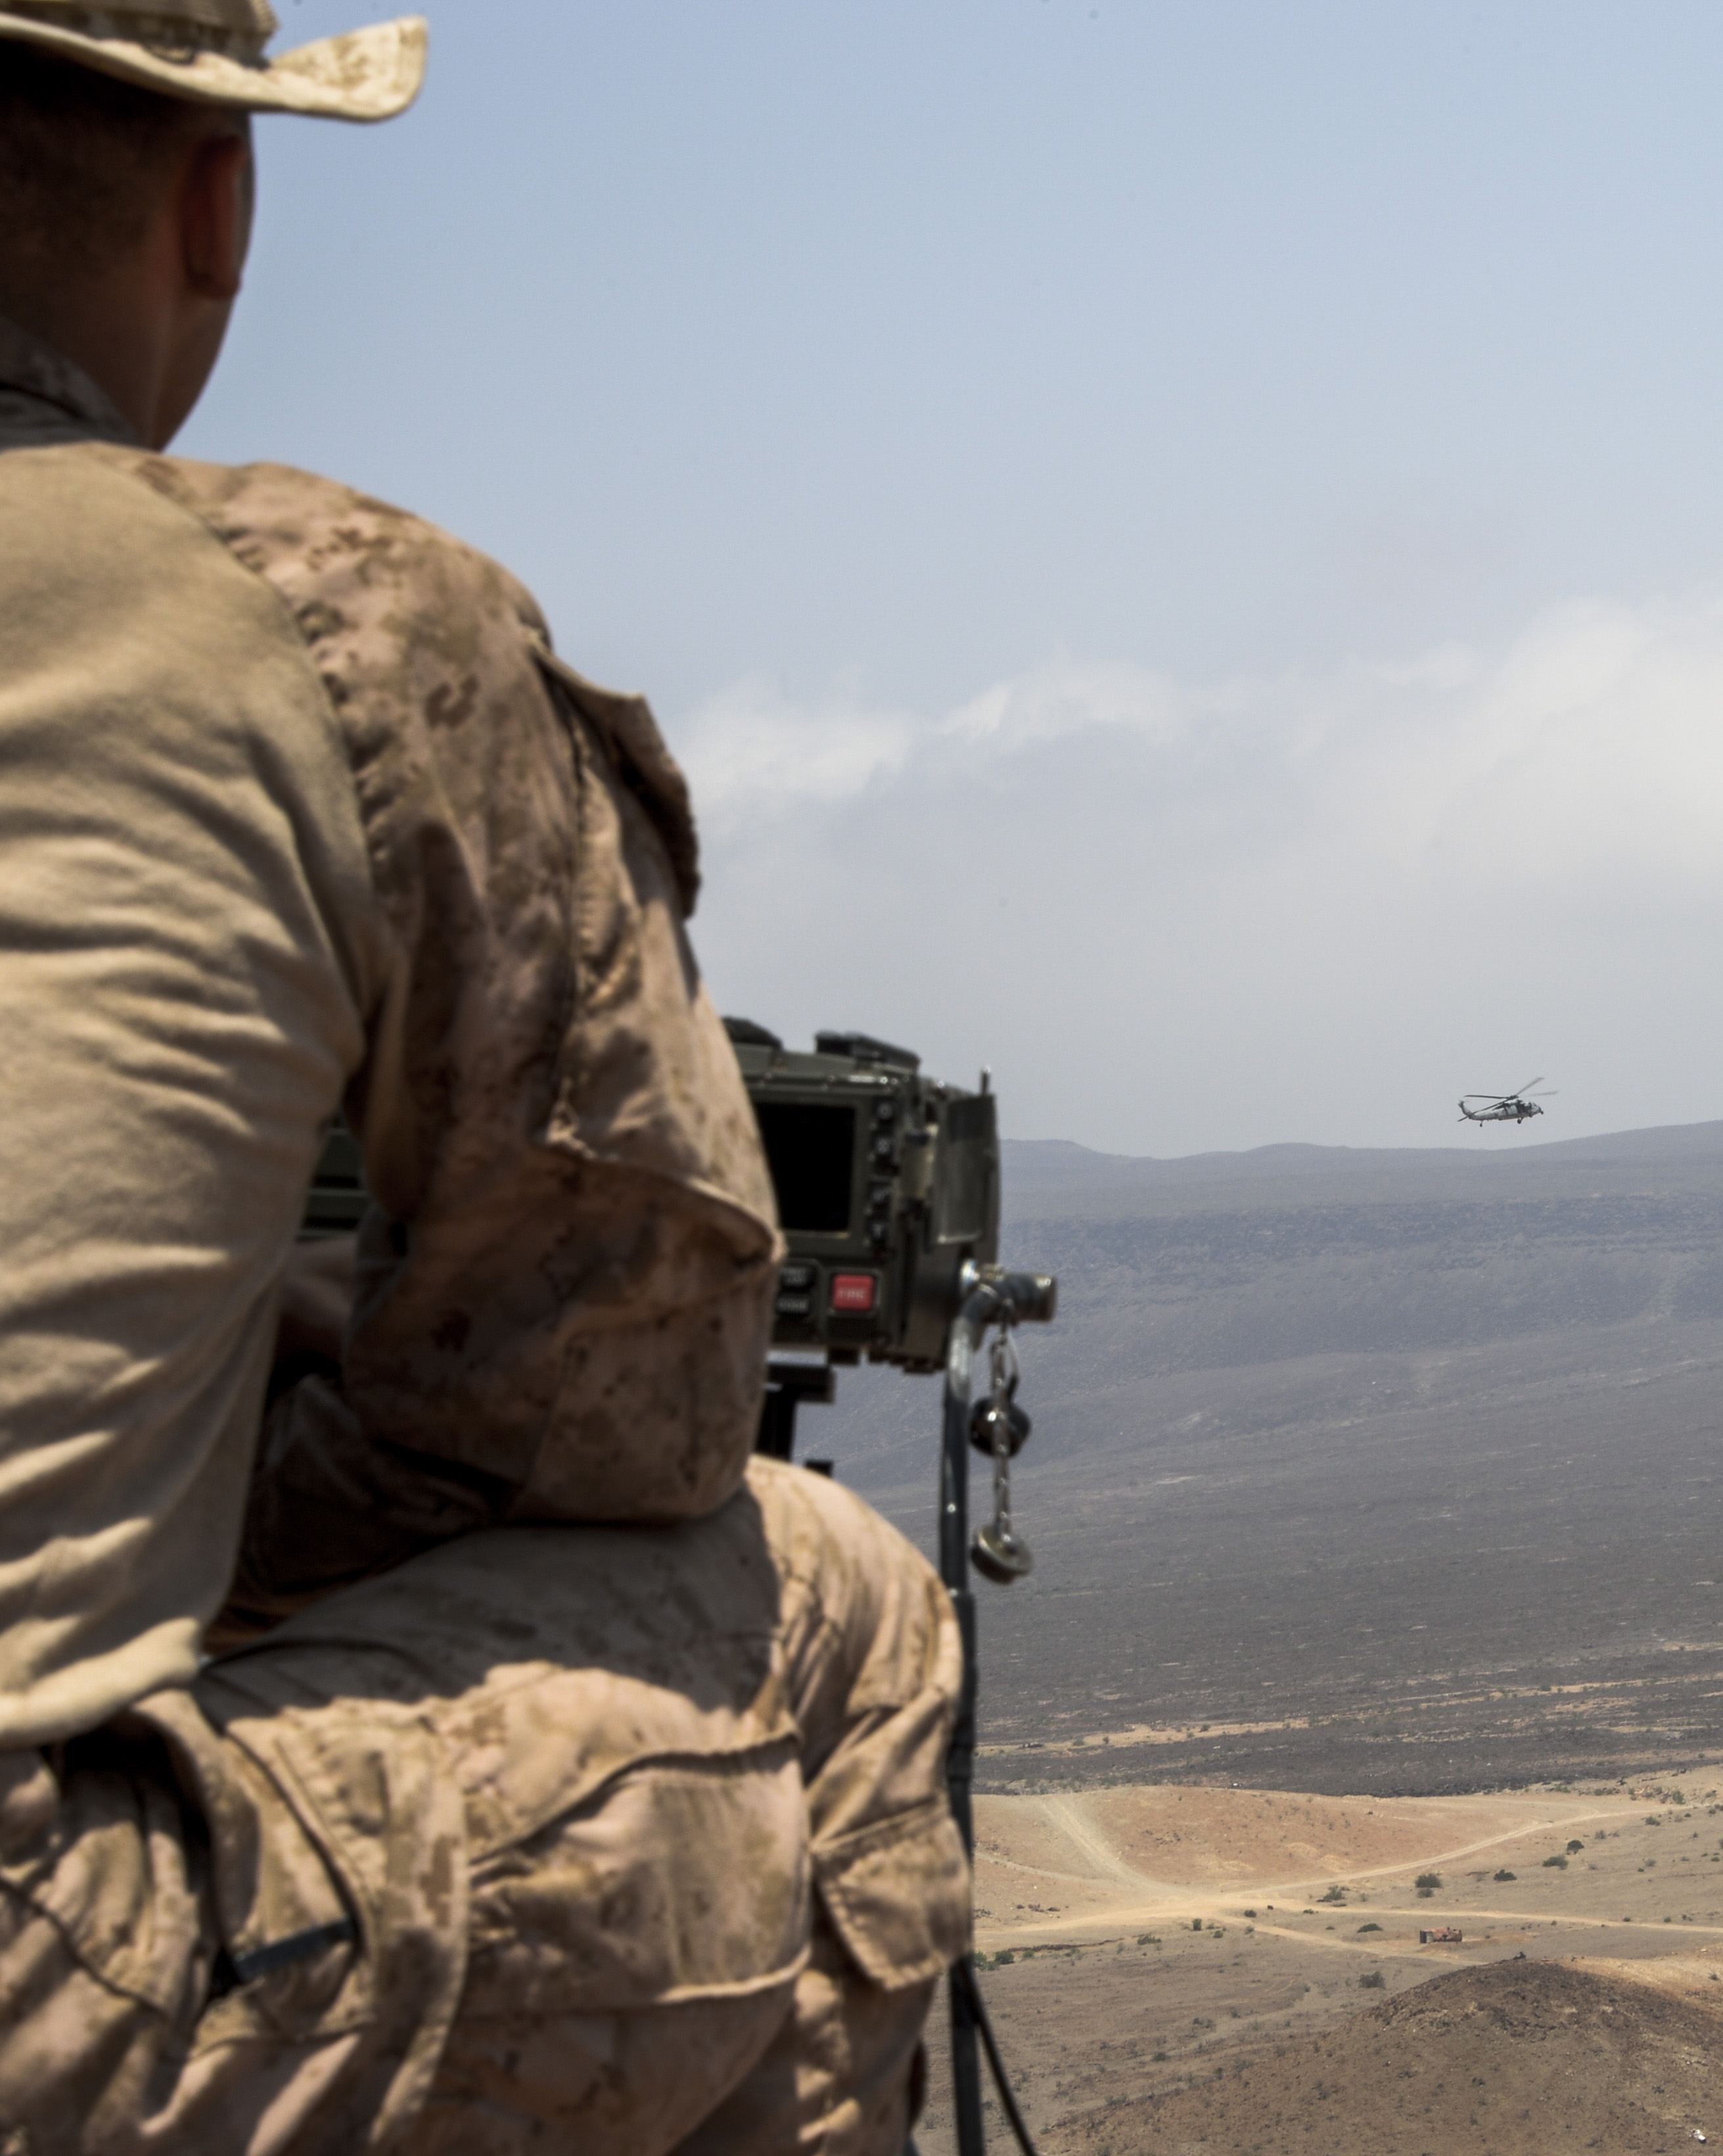 A U.S. Marine, 24th Marine Expeditionary Unit (24th MEU), activates a targeting laser to guide a U.S. Navy SH-60 Seahawk on an attack run during Exercise Alligator Dagger at Arta Plage, Djibouti, April 9, 2017. Alligator Dagger provides a unique opportunity to enhance capabilities in critical mission sets inherent to the U.S. Navy-Marine Corps team. (U.S. Air National Guard photo by Staff Sgt. Christian Jadot)